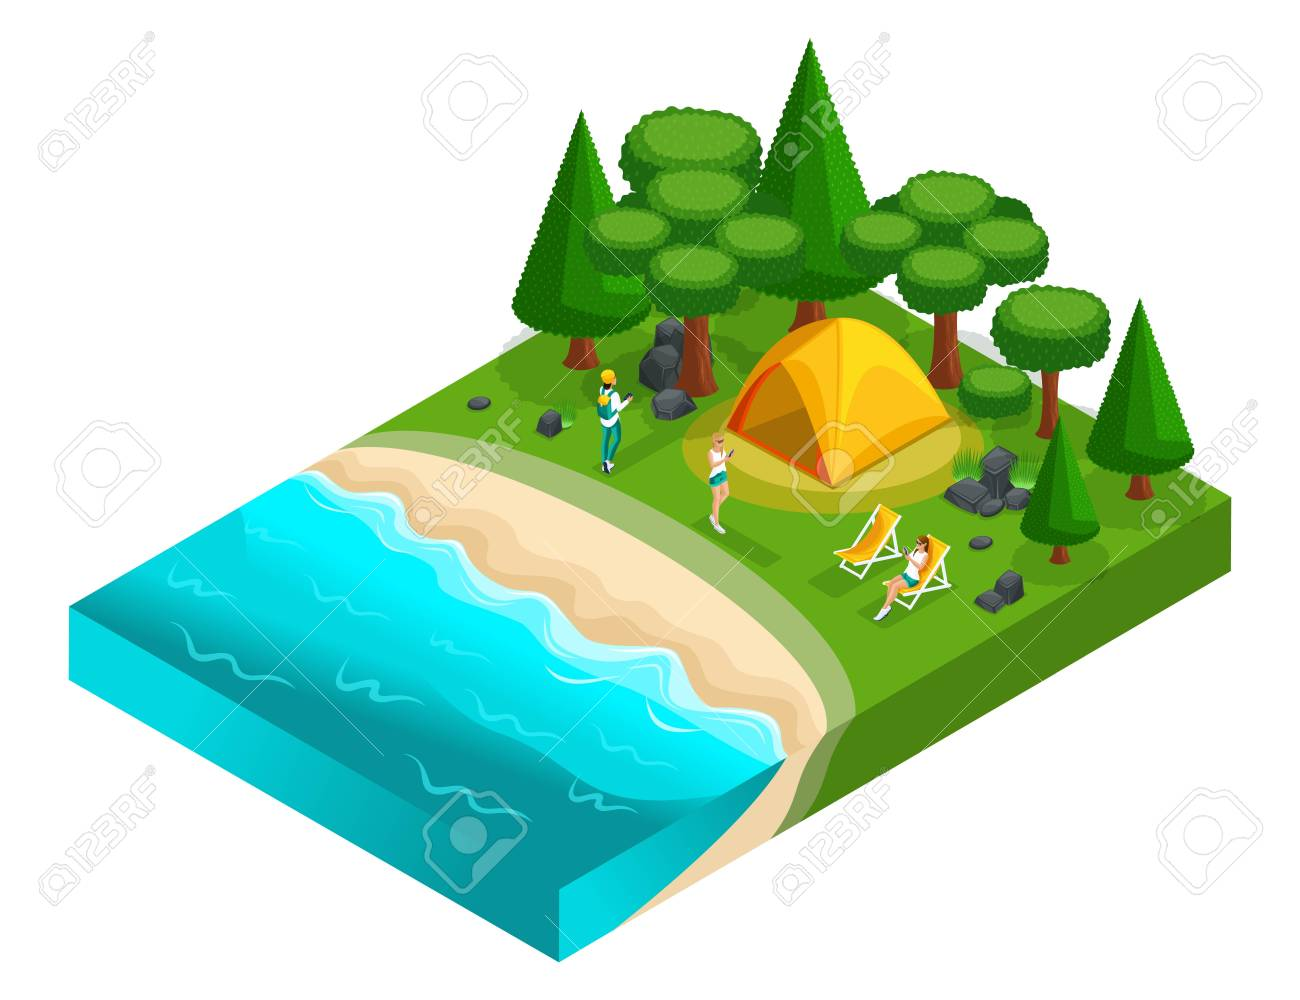 Isometrics of camping, recreation of young people of generation Z on the nature, forest, sea, beach, shore of the lake, bank of the river. Healthy lifestyle. - 110282885